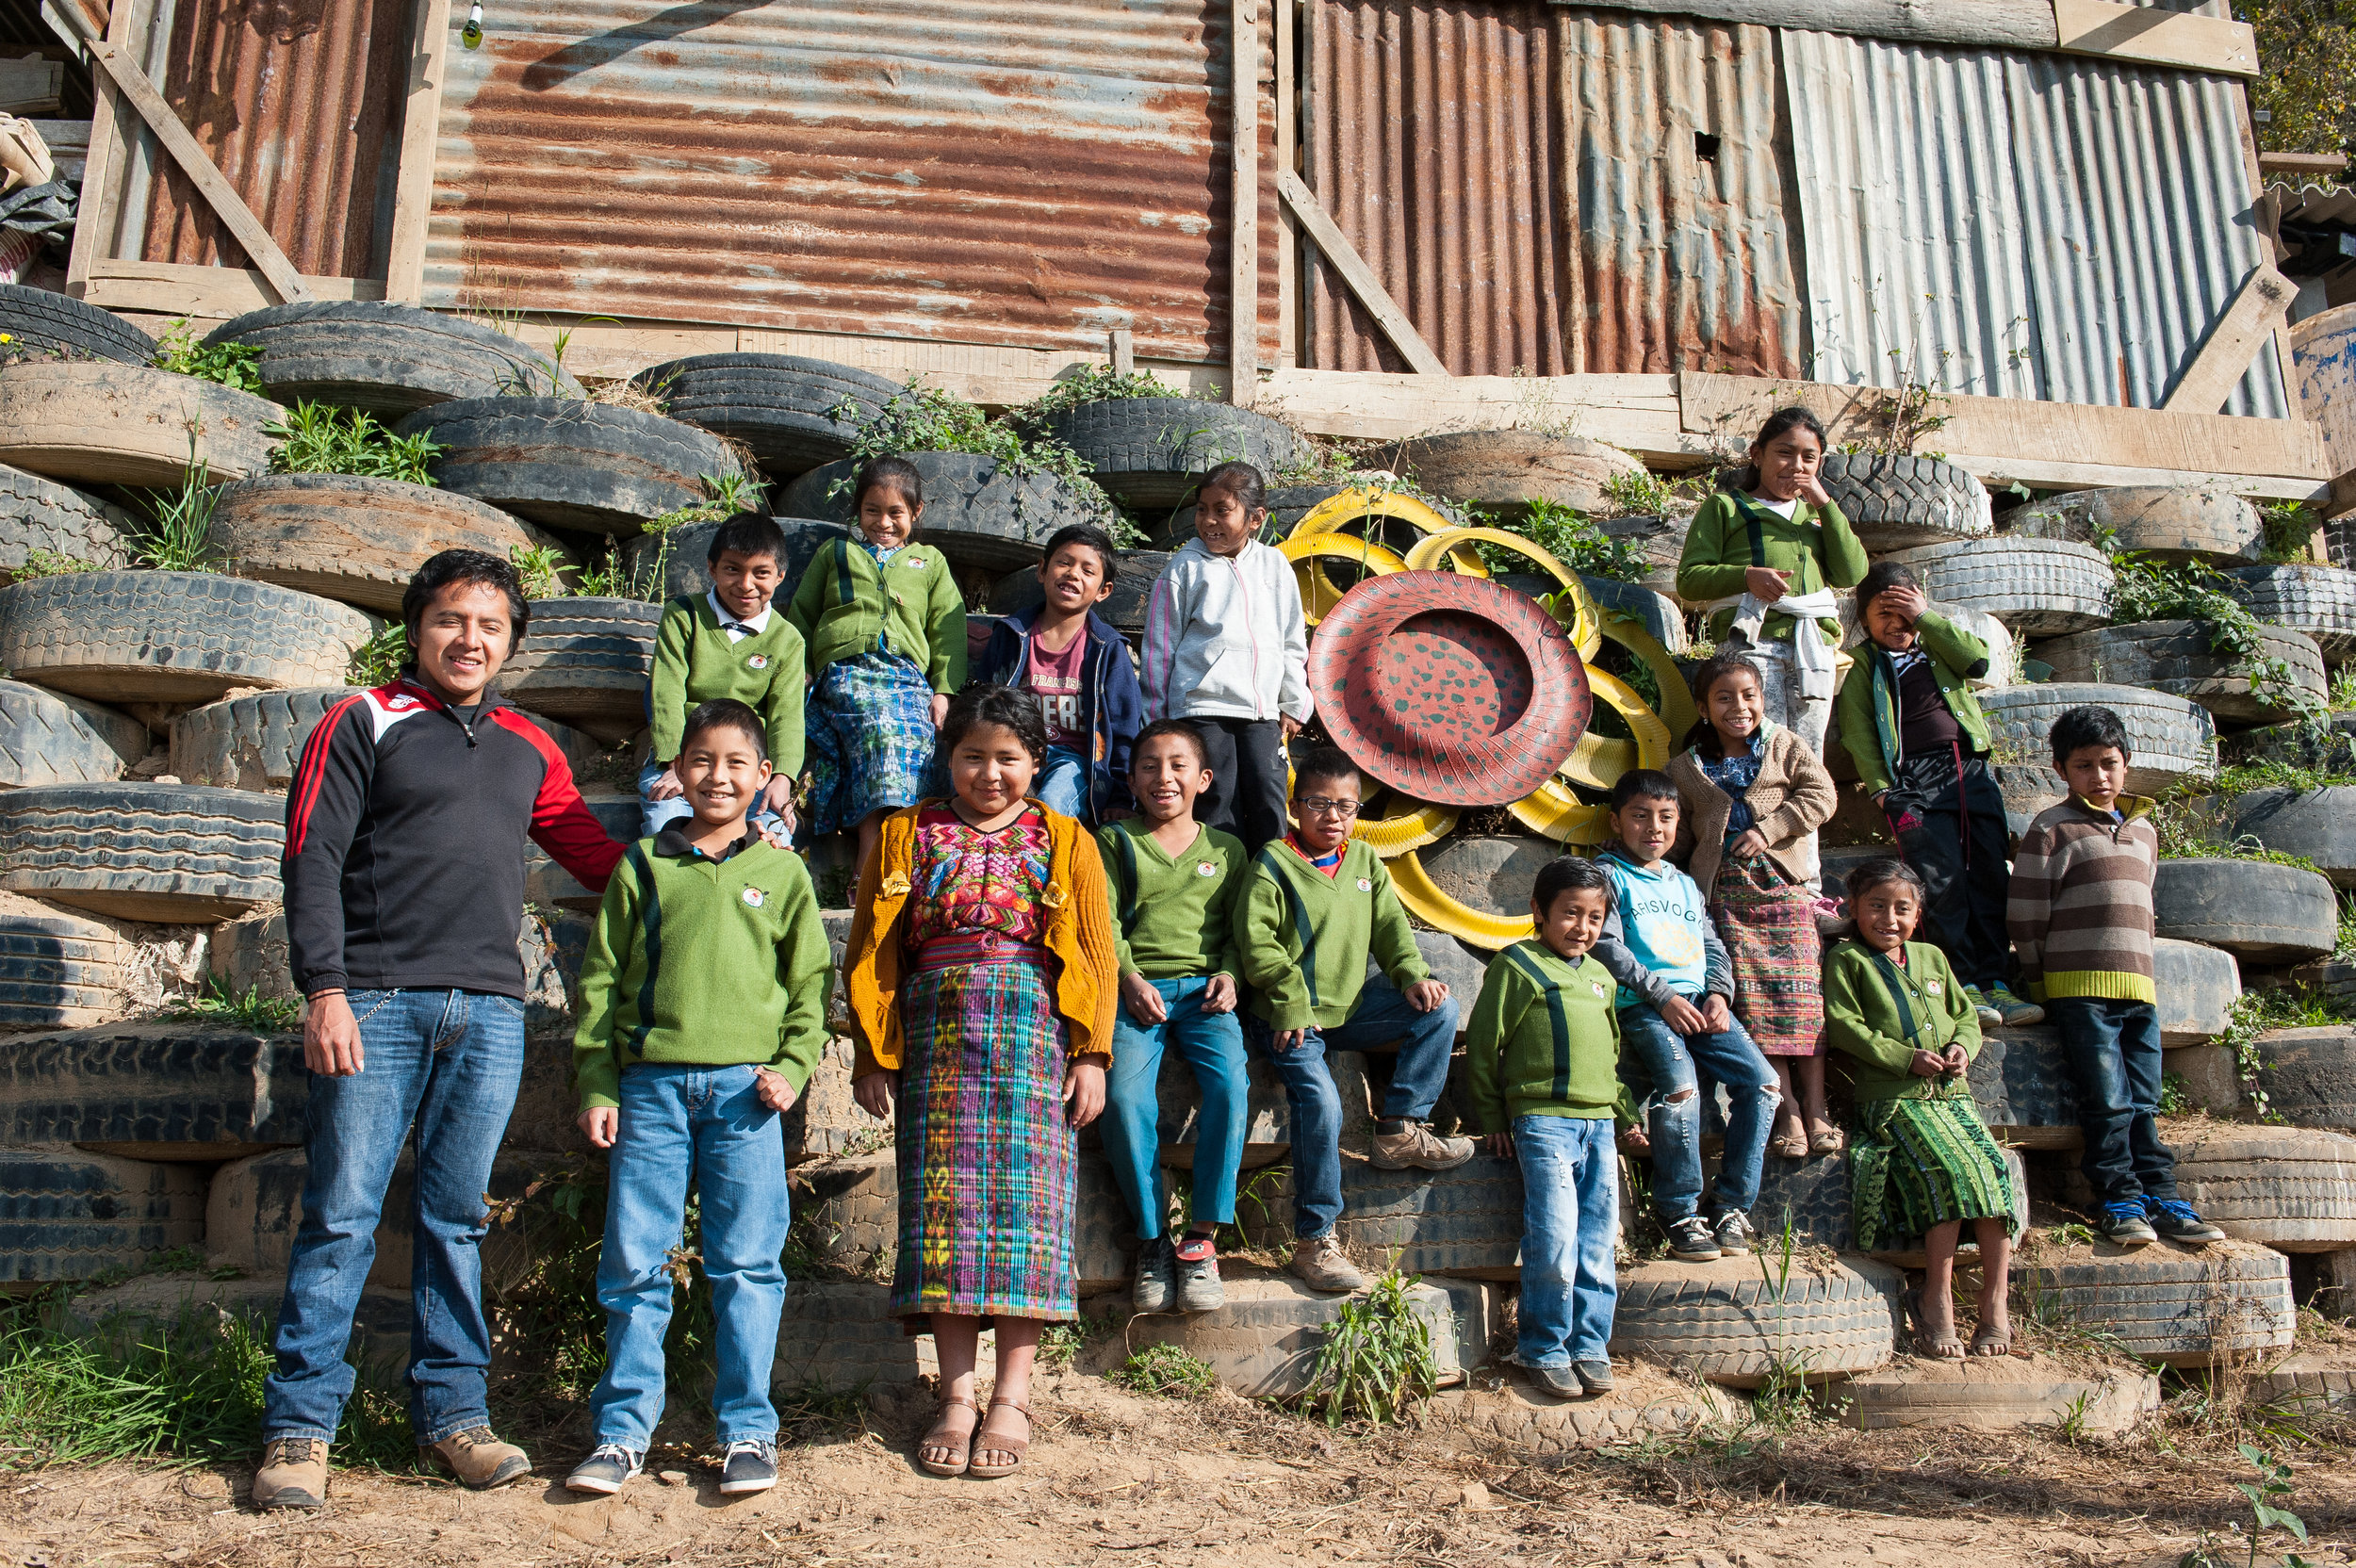 1540 LONG WAY HOME_2016_Guatemala_photographers without borders_ronbwilson_160308_1906.jpg